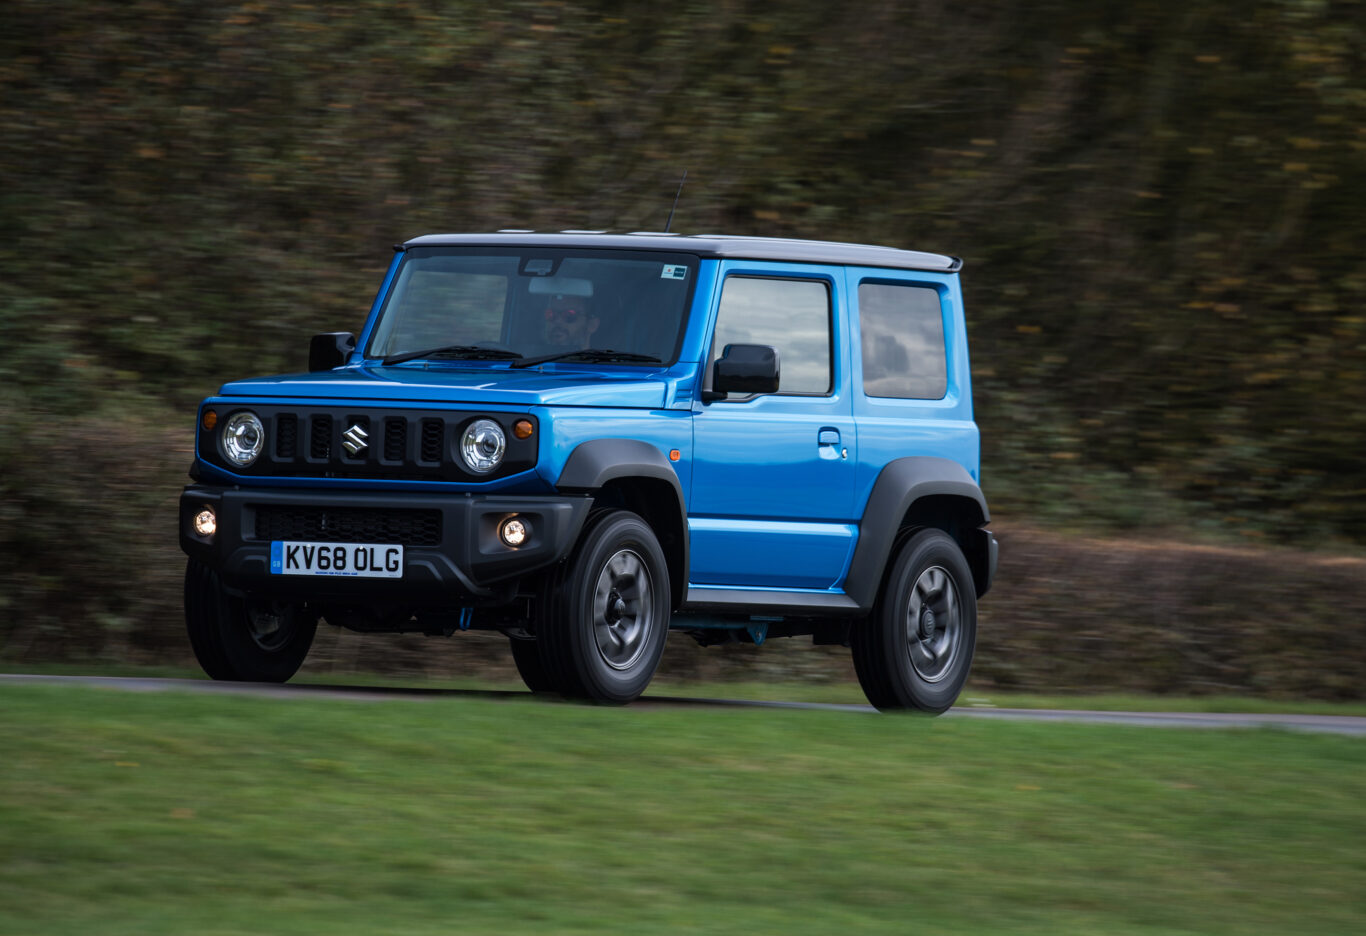 The Jimny is remarkably capable off-road